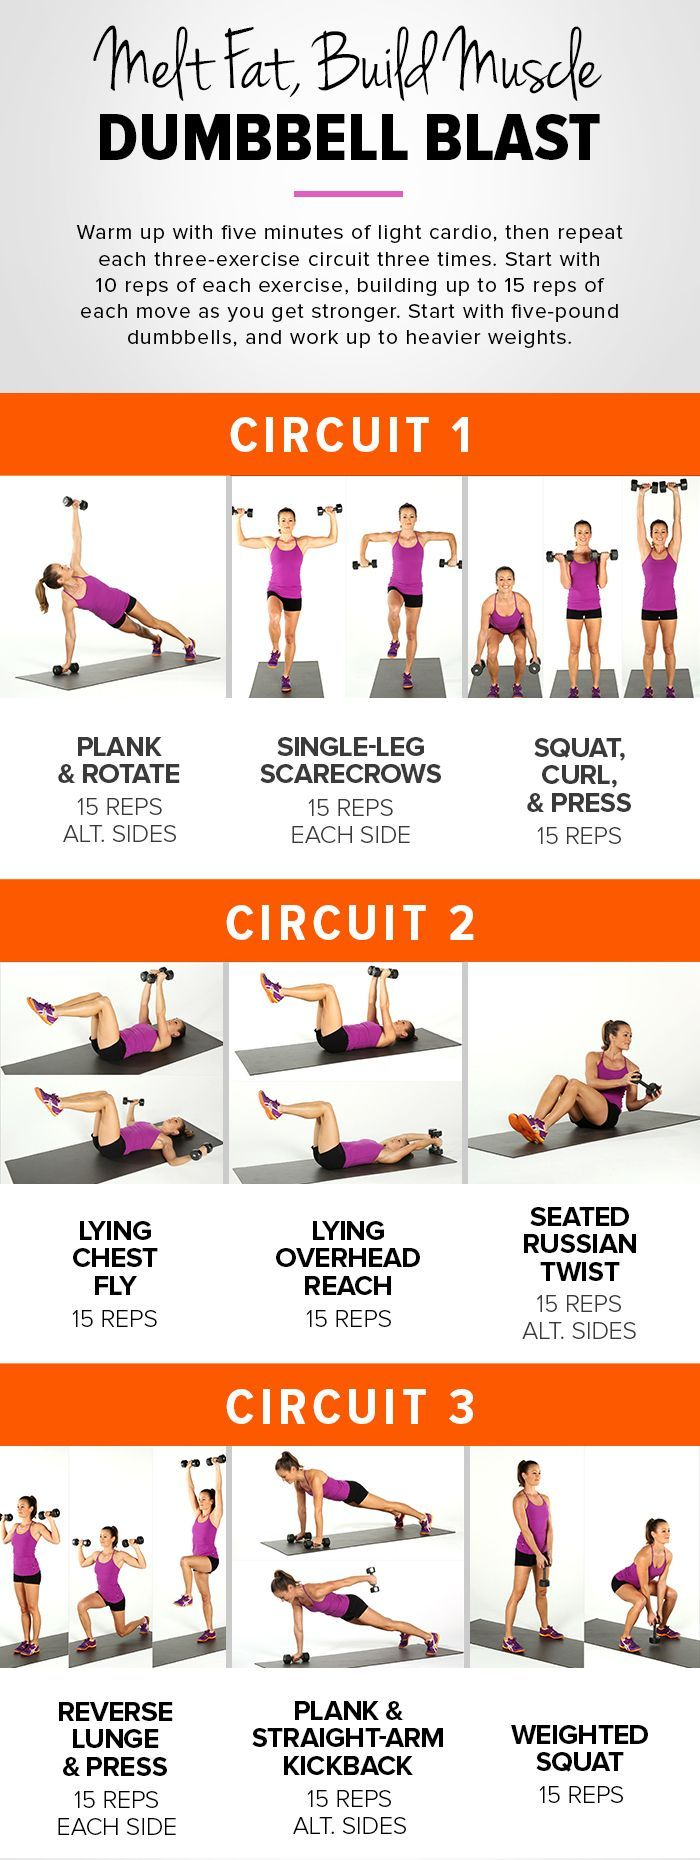 weekend fitness tips and shopping recommendation, circuit training plan, fitness tips, Spring fashion, things I love, workout plan, circuit training